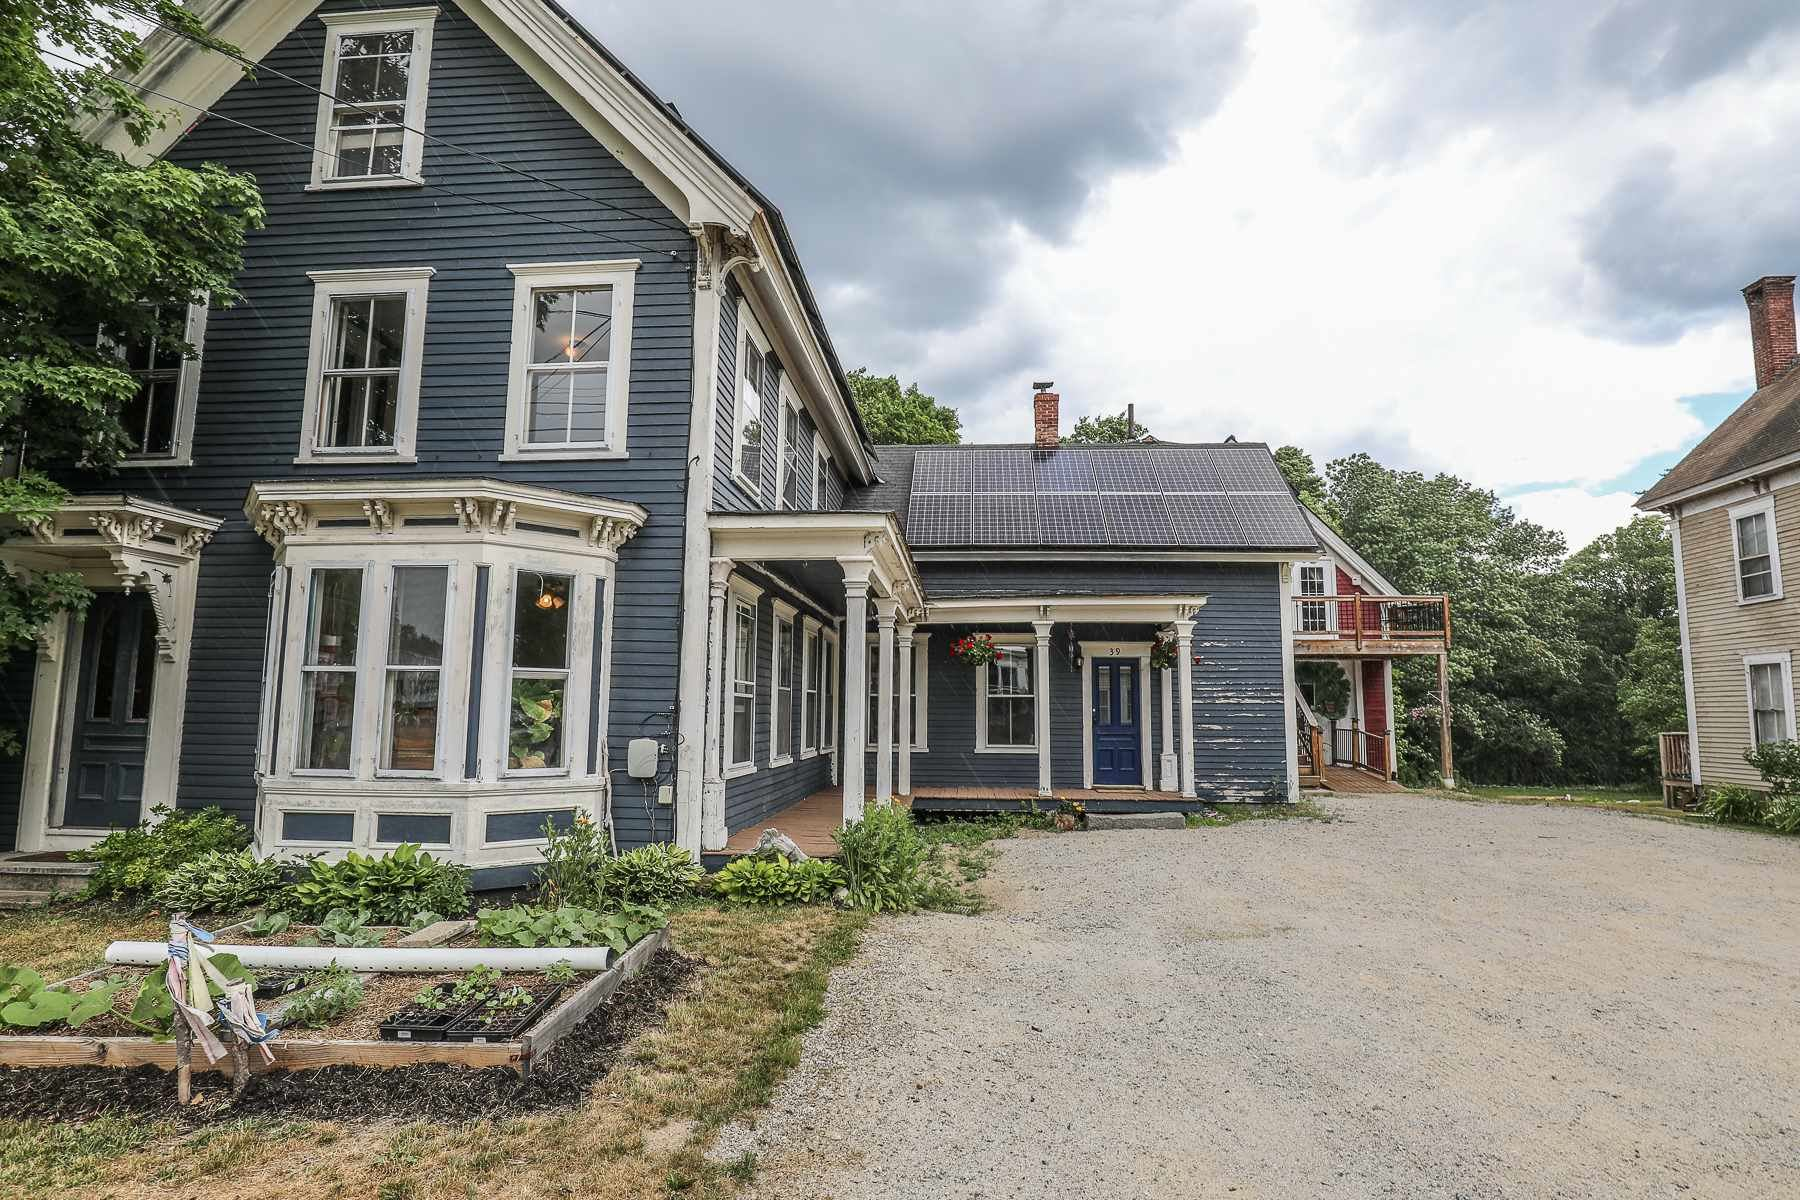 39 school Street, Hillsborough, NH 03244 - MLS#: 4817037